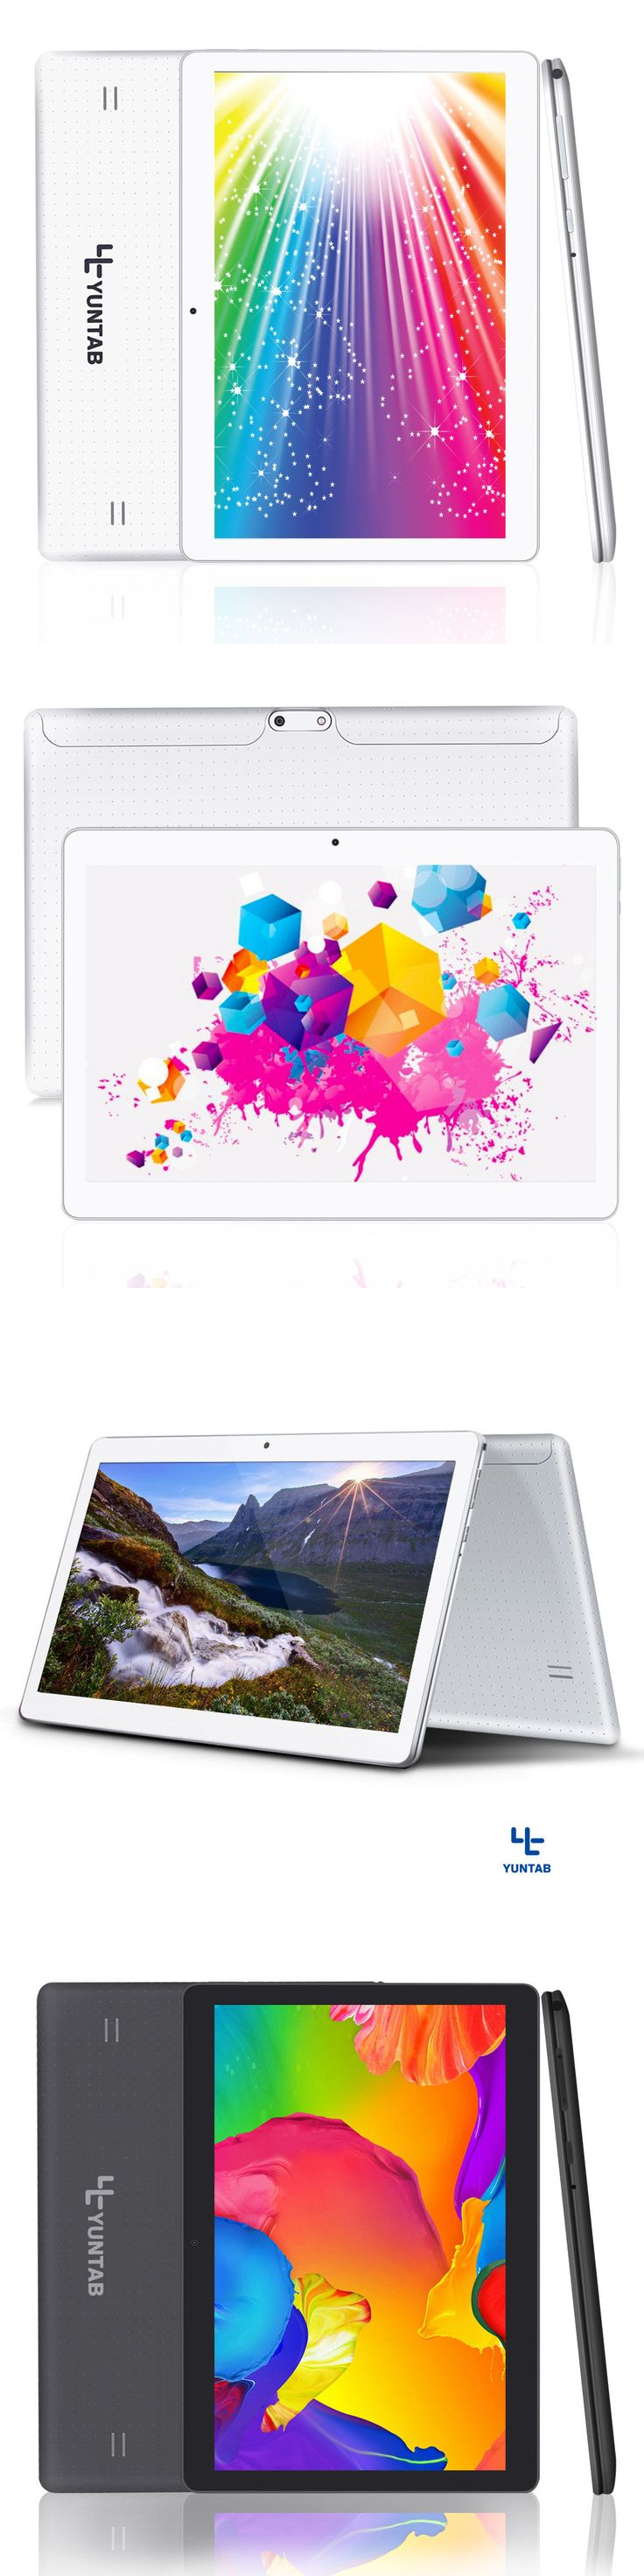 Computers Tablets Networking: New 10.1 Tablet Pc Android 5.1 Quad Core 16Gb 10 Inch Hd Wifi 2 Sim 3G Phablet -> BUY IT NOW ONLY: $75.69 on eBay!